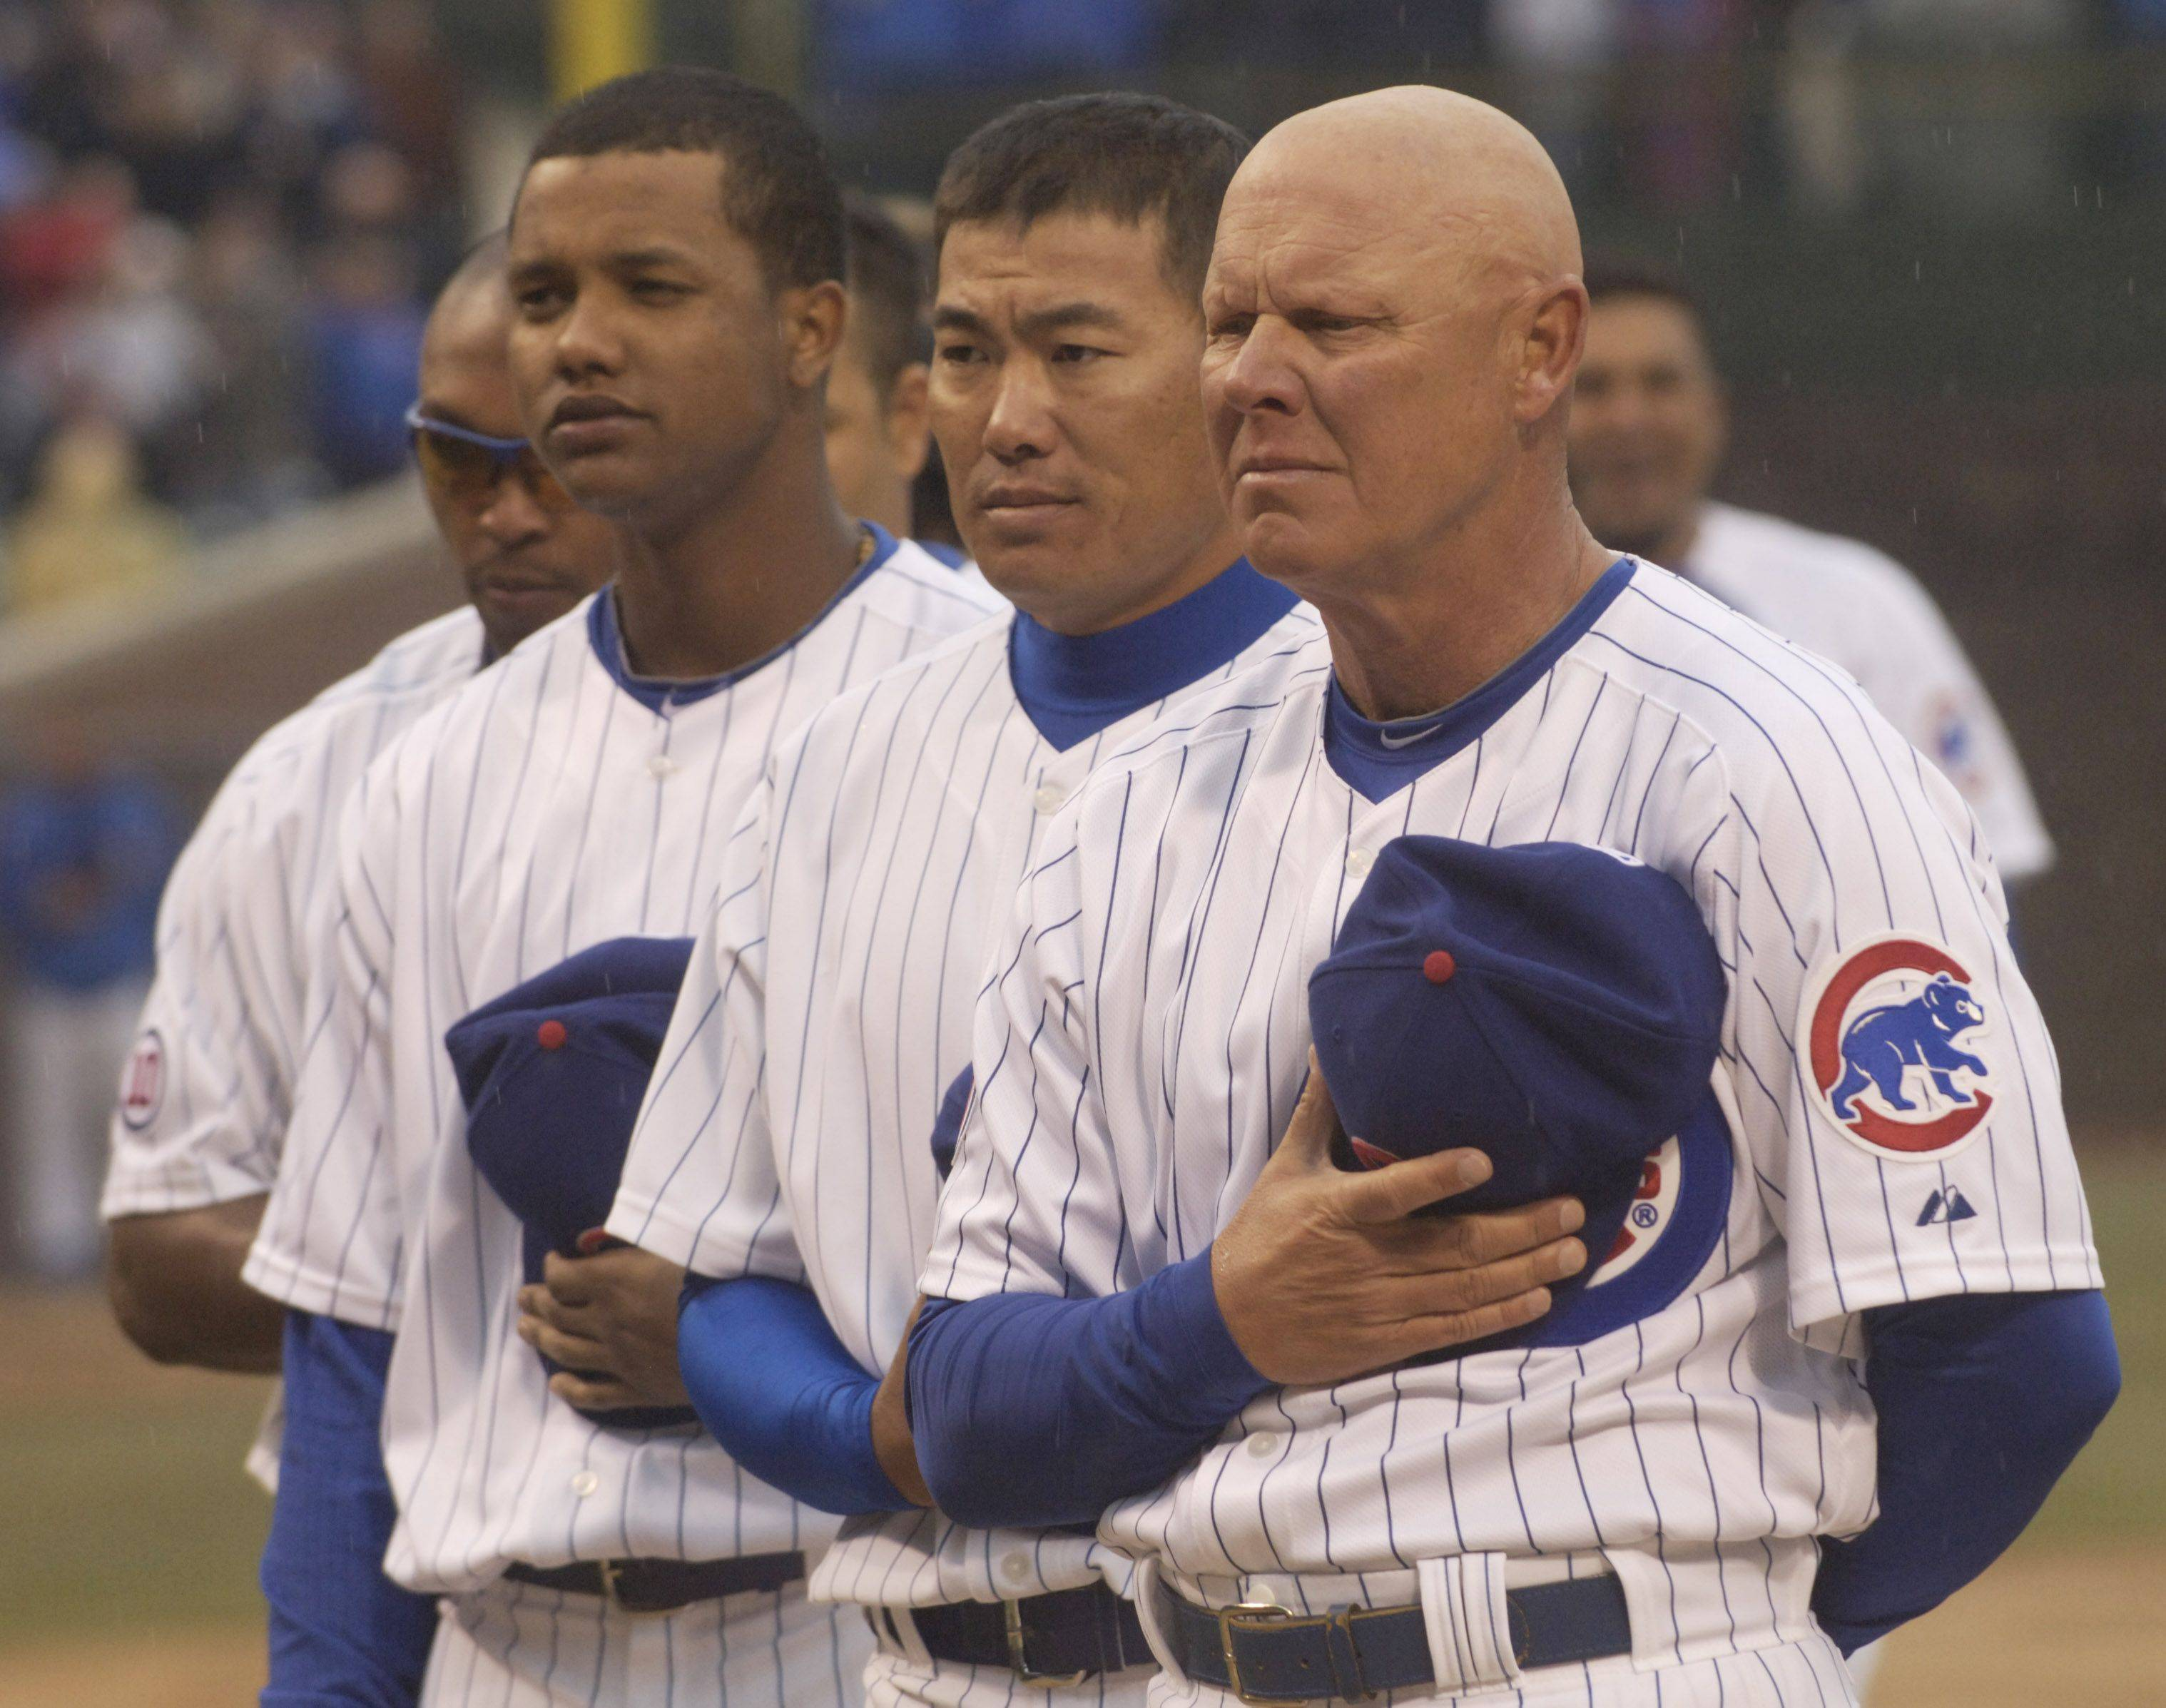 Cubs Manager Mike Quade stands with his team during the National Anthem on Opening Day at Wrigley Field Friday.